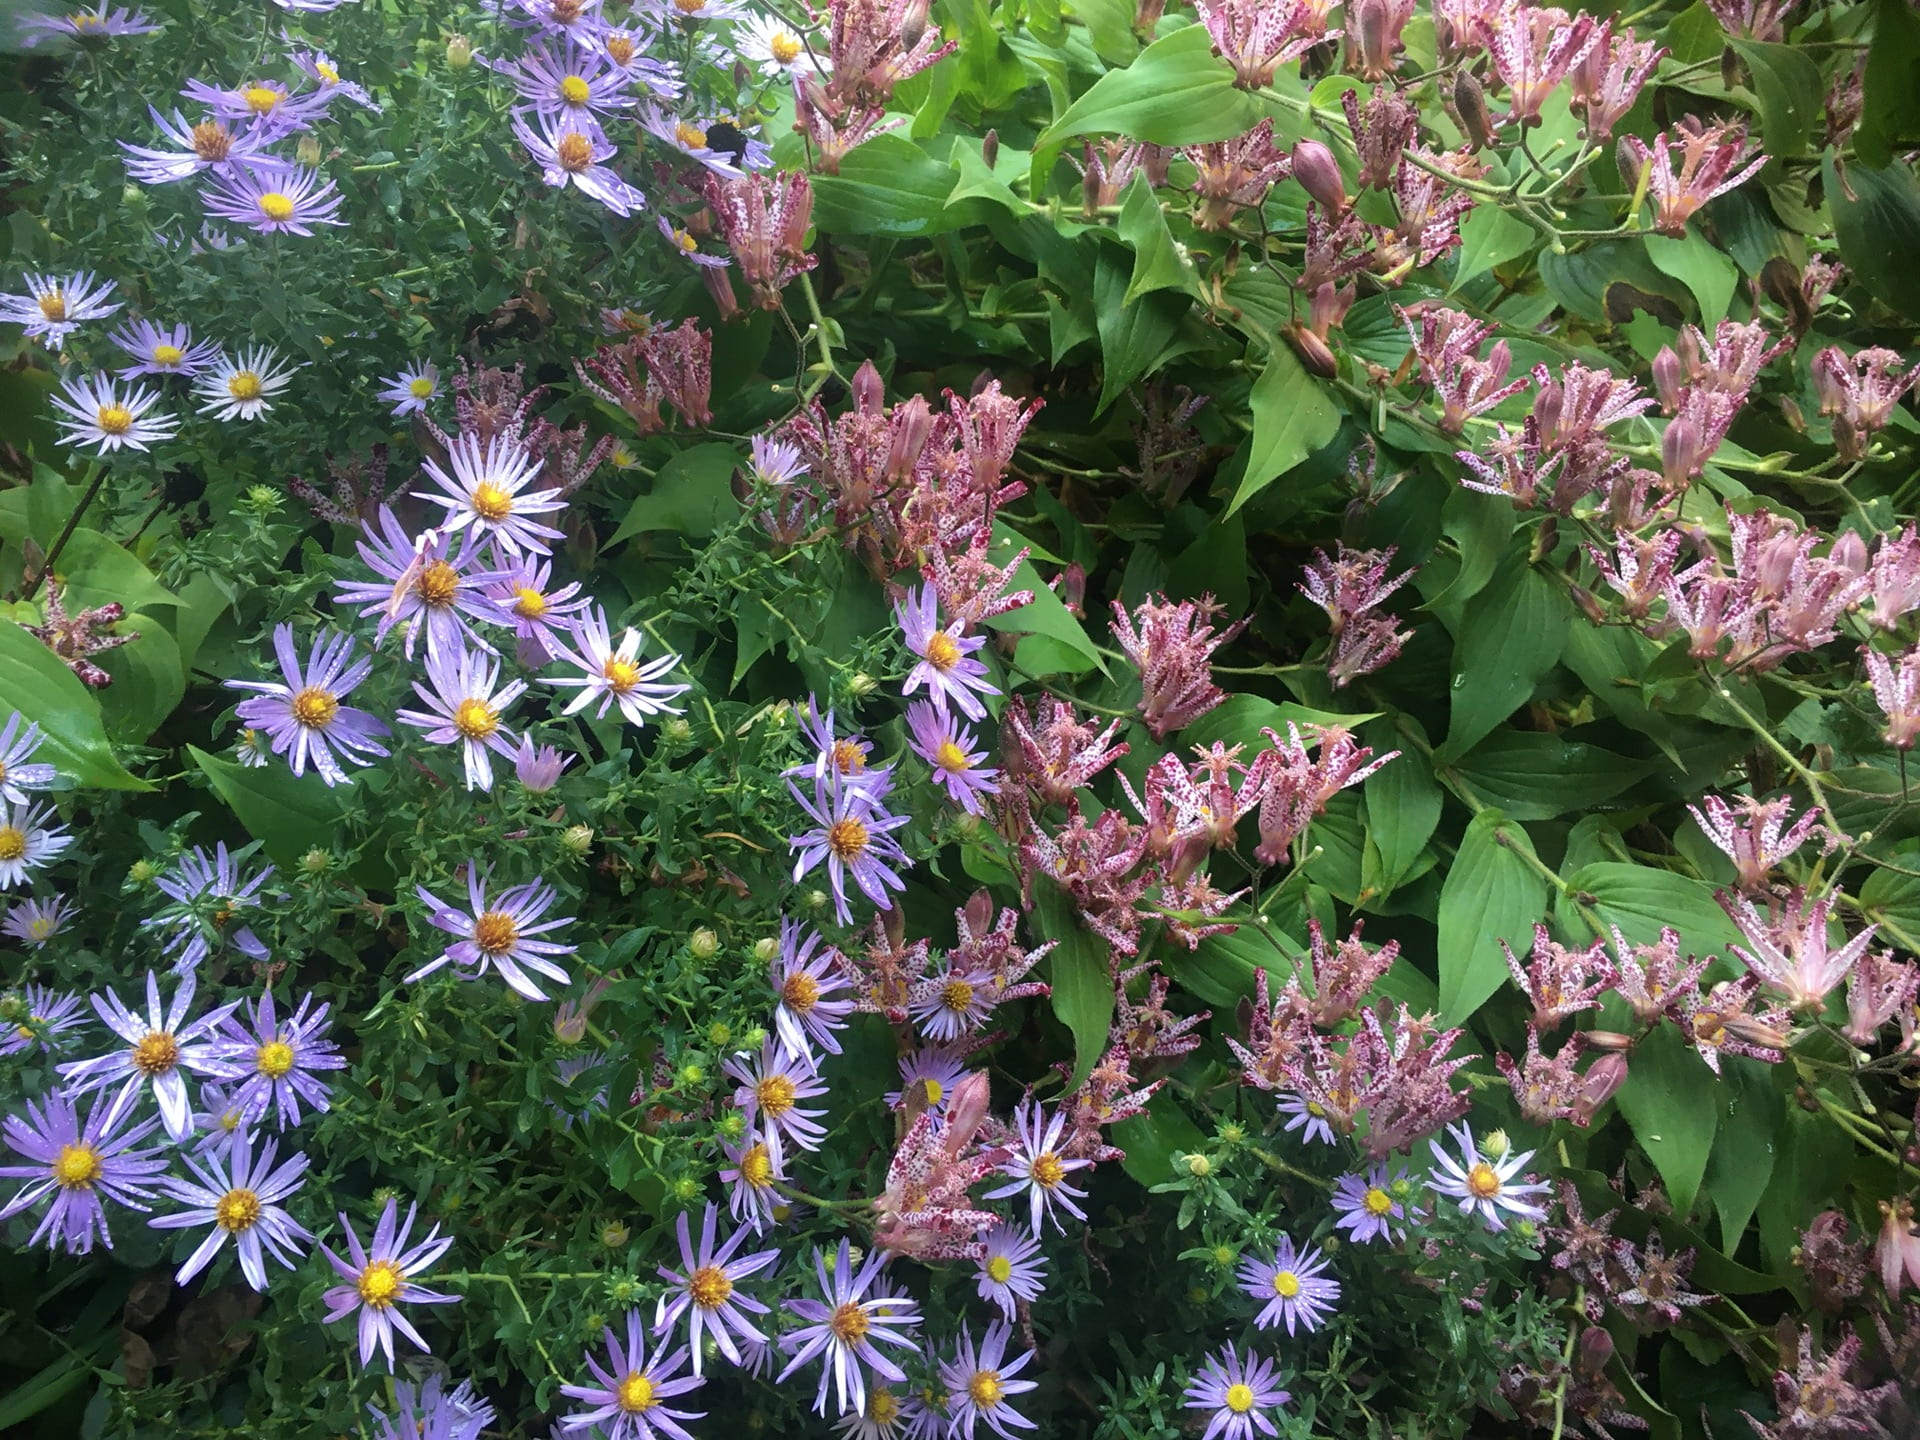 Late season blooms of Tricyris formosana mingle with those of Symphyotrichum novae-angliae.